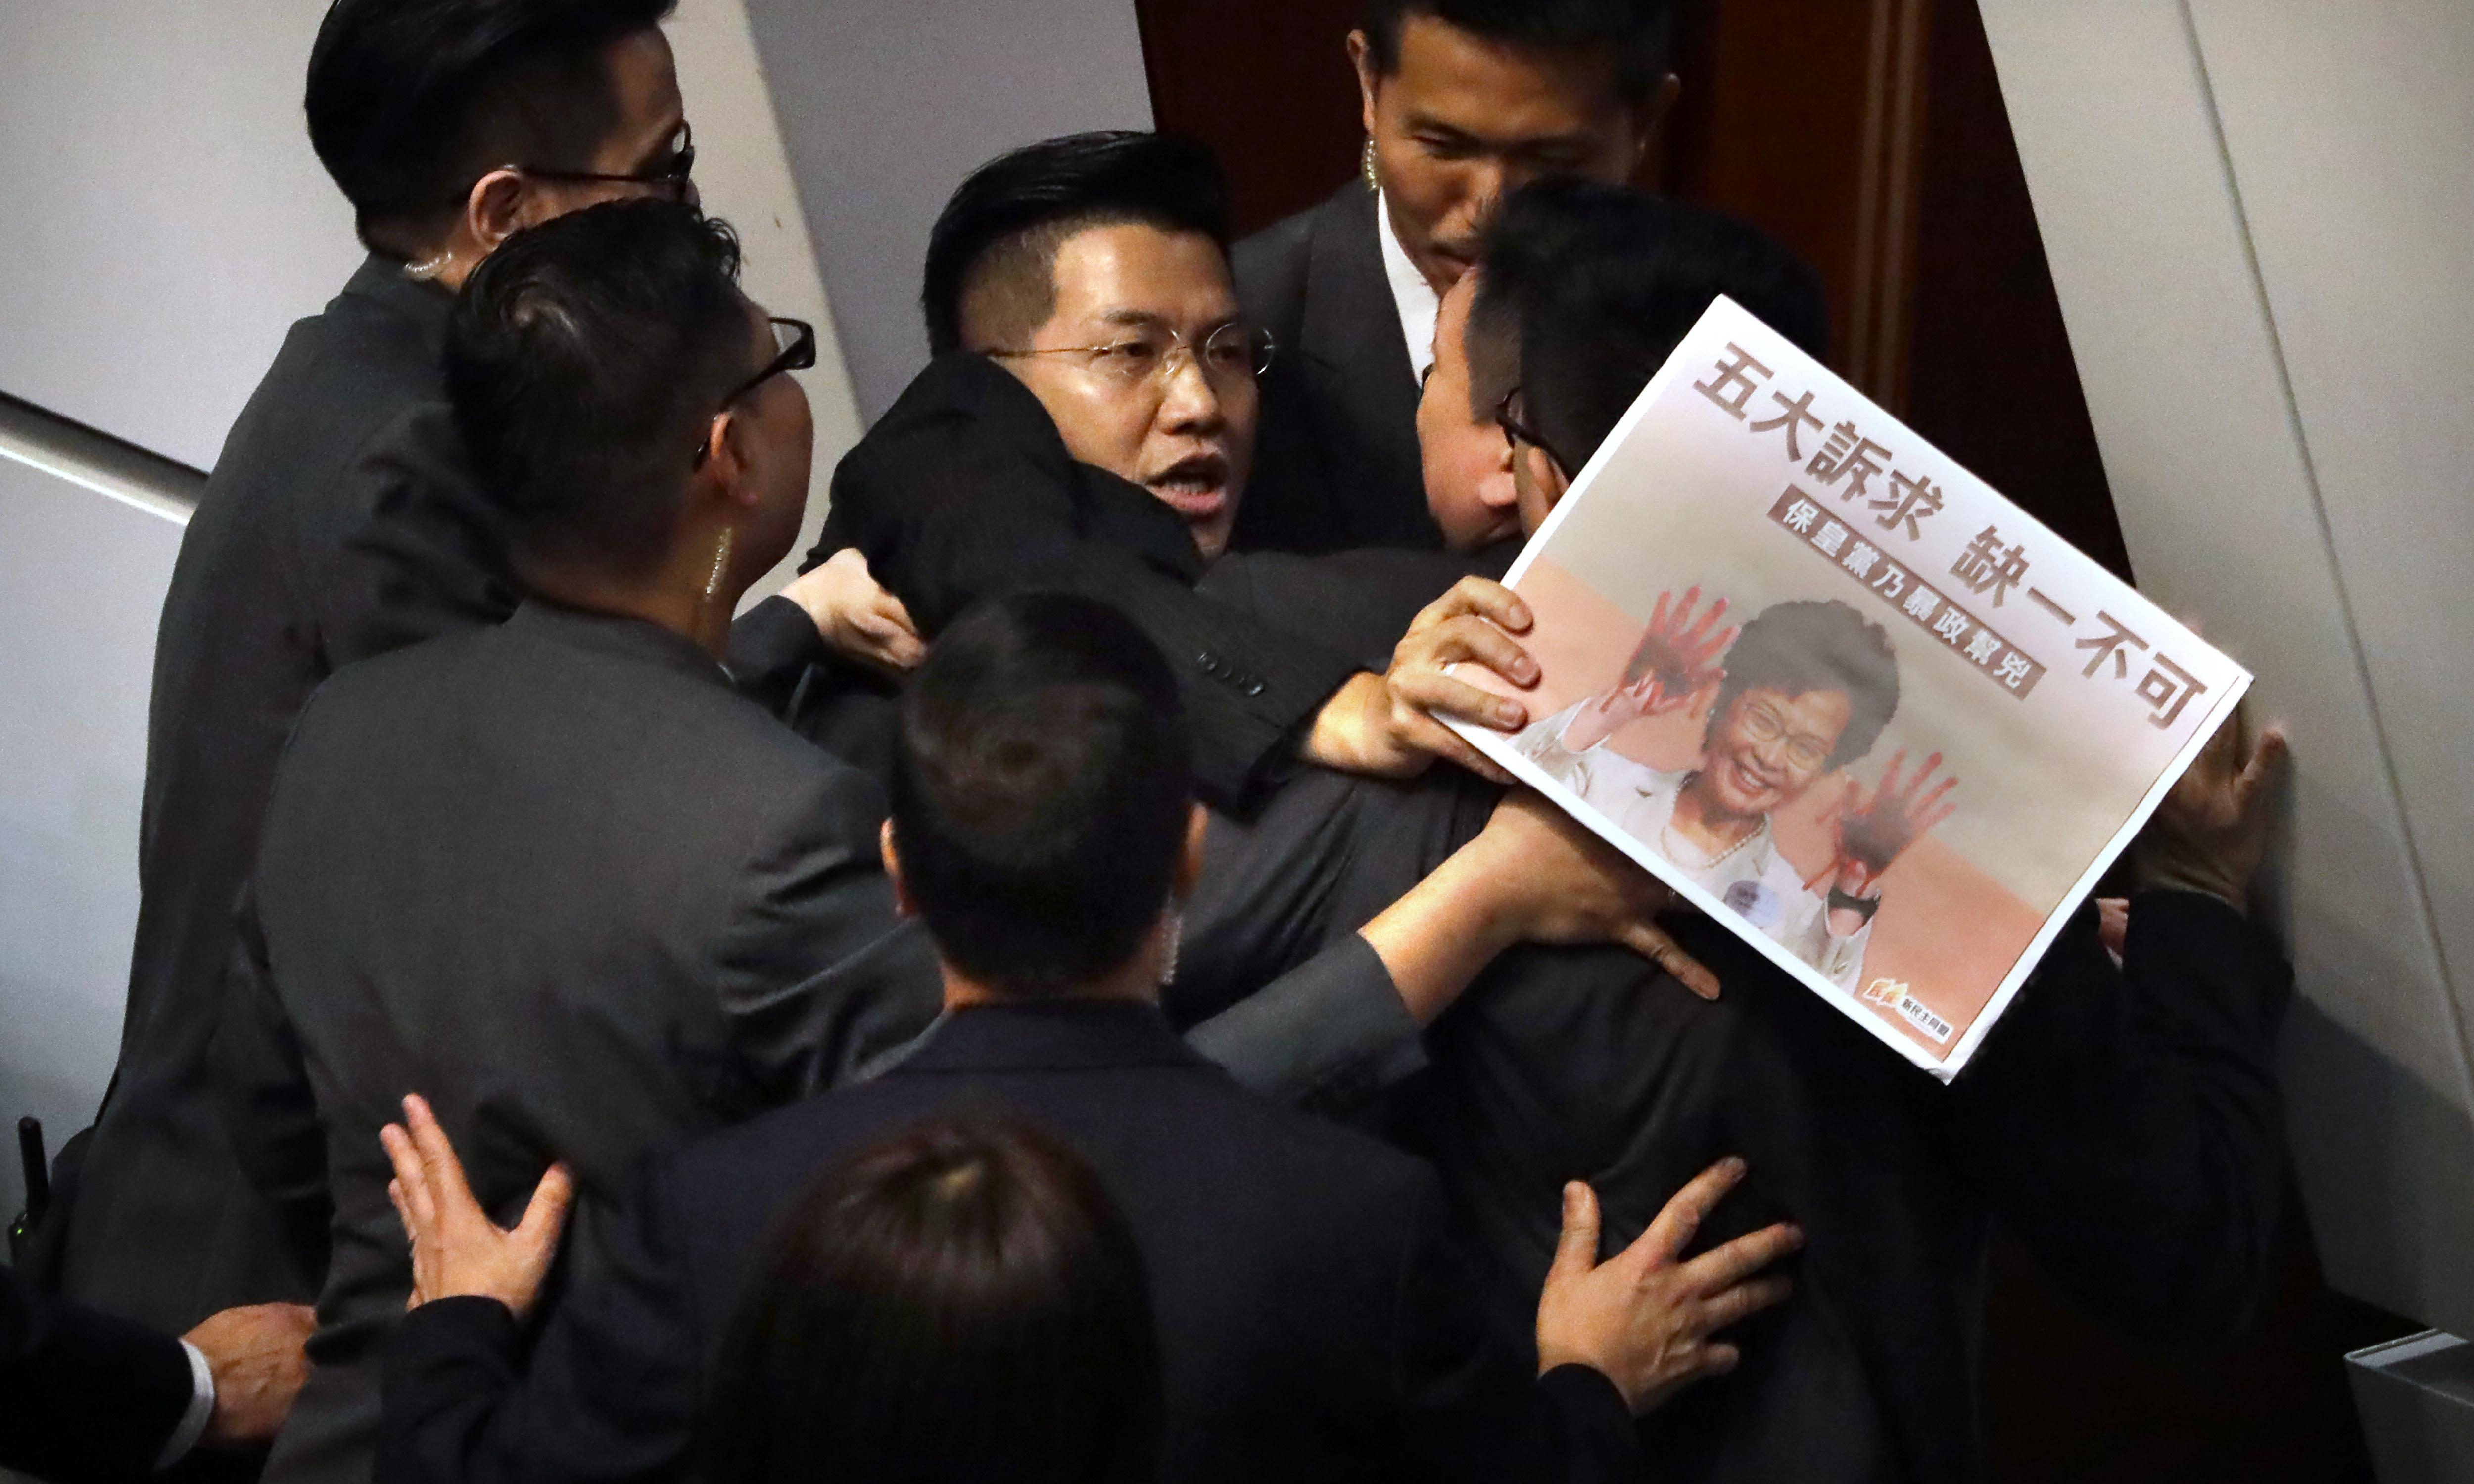 Chaos in Hong Kong chamber over violent attack on activist